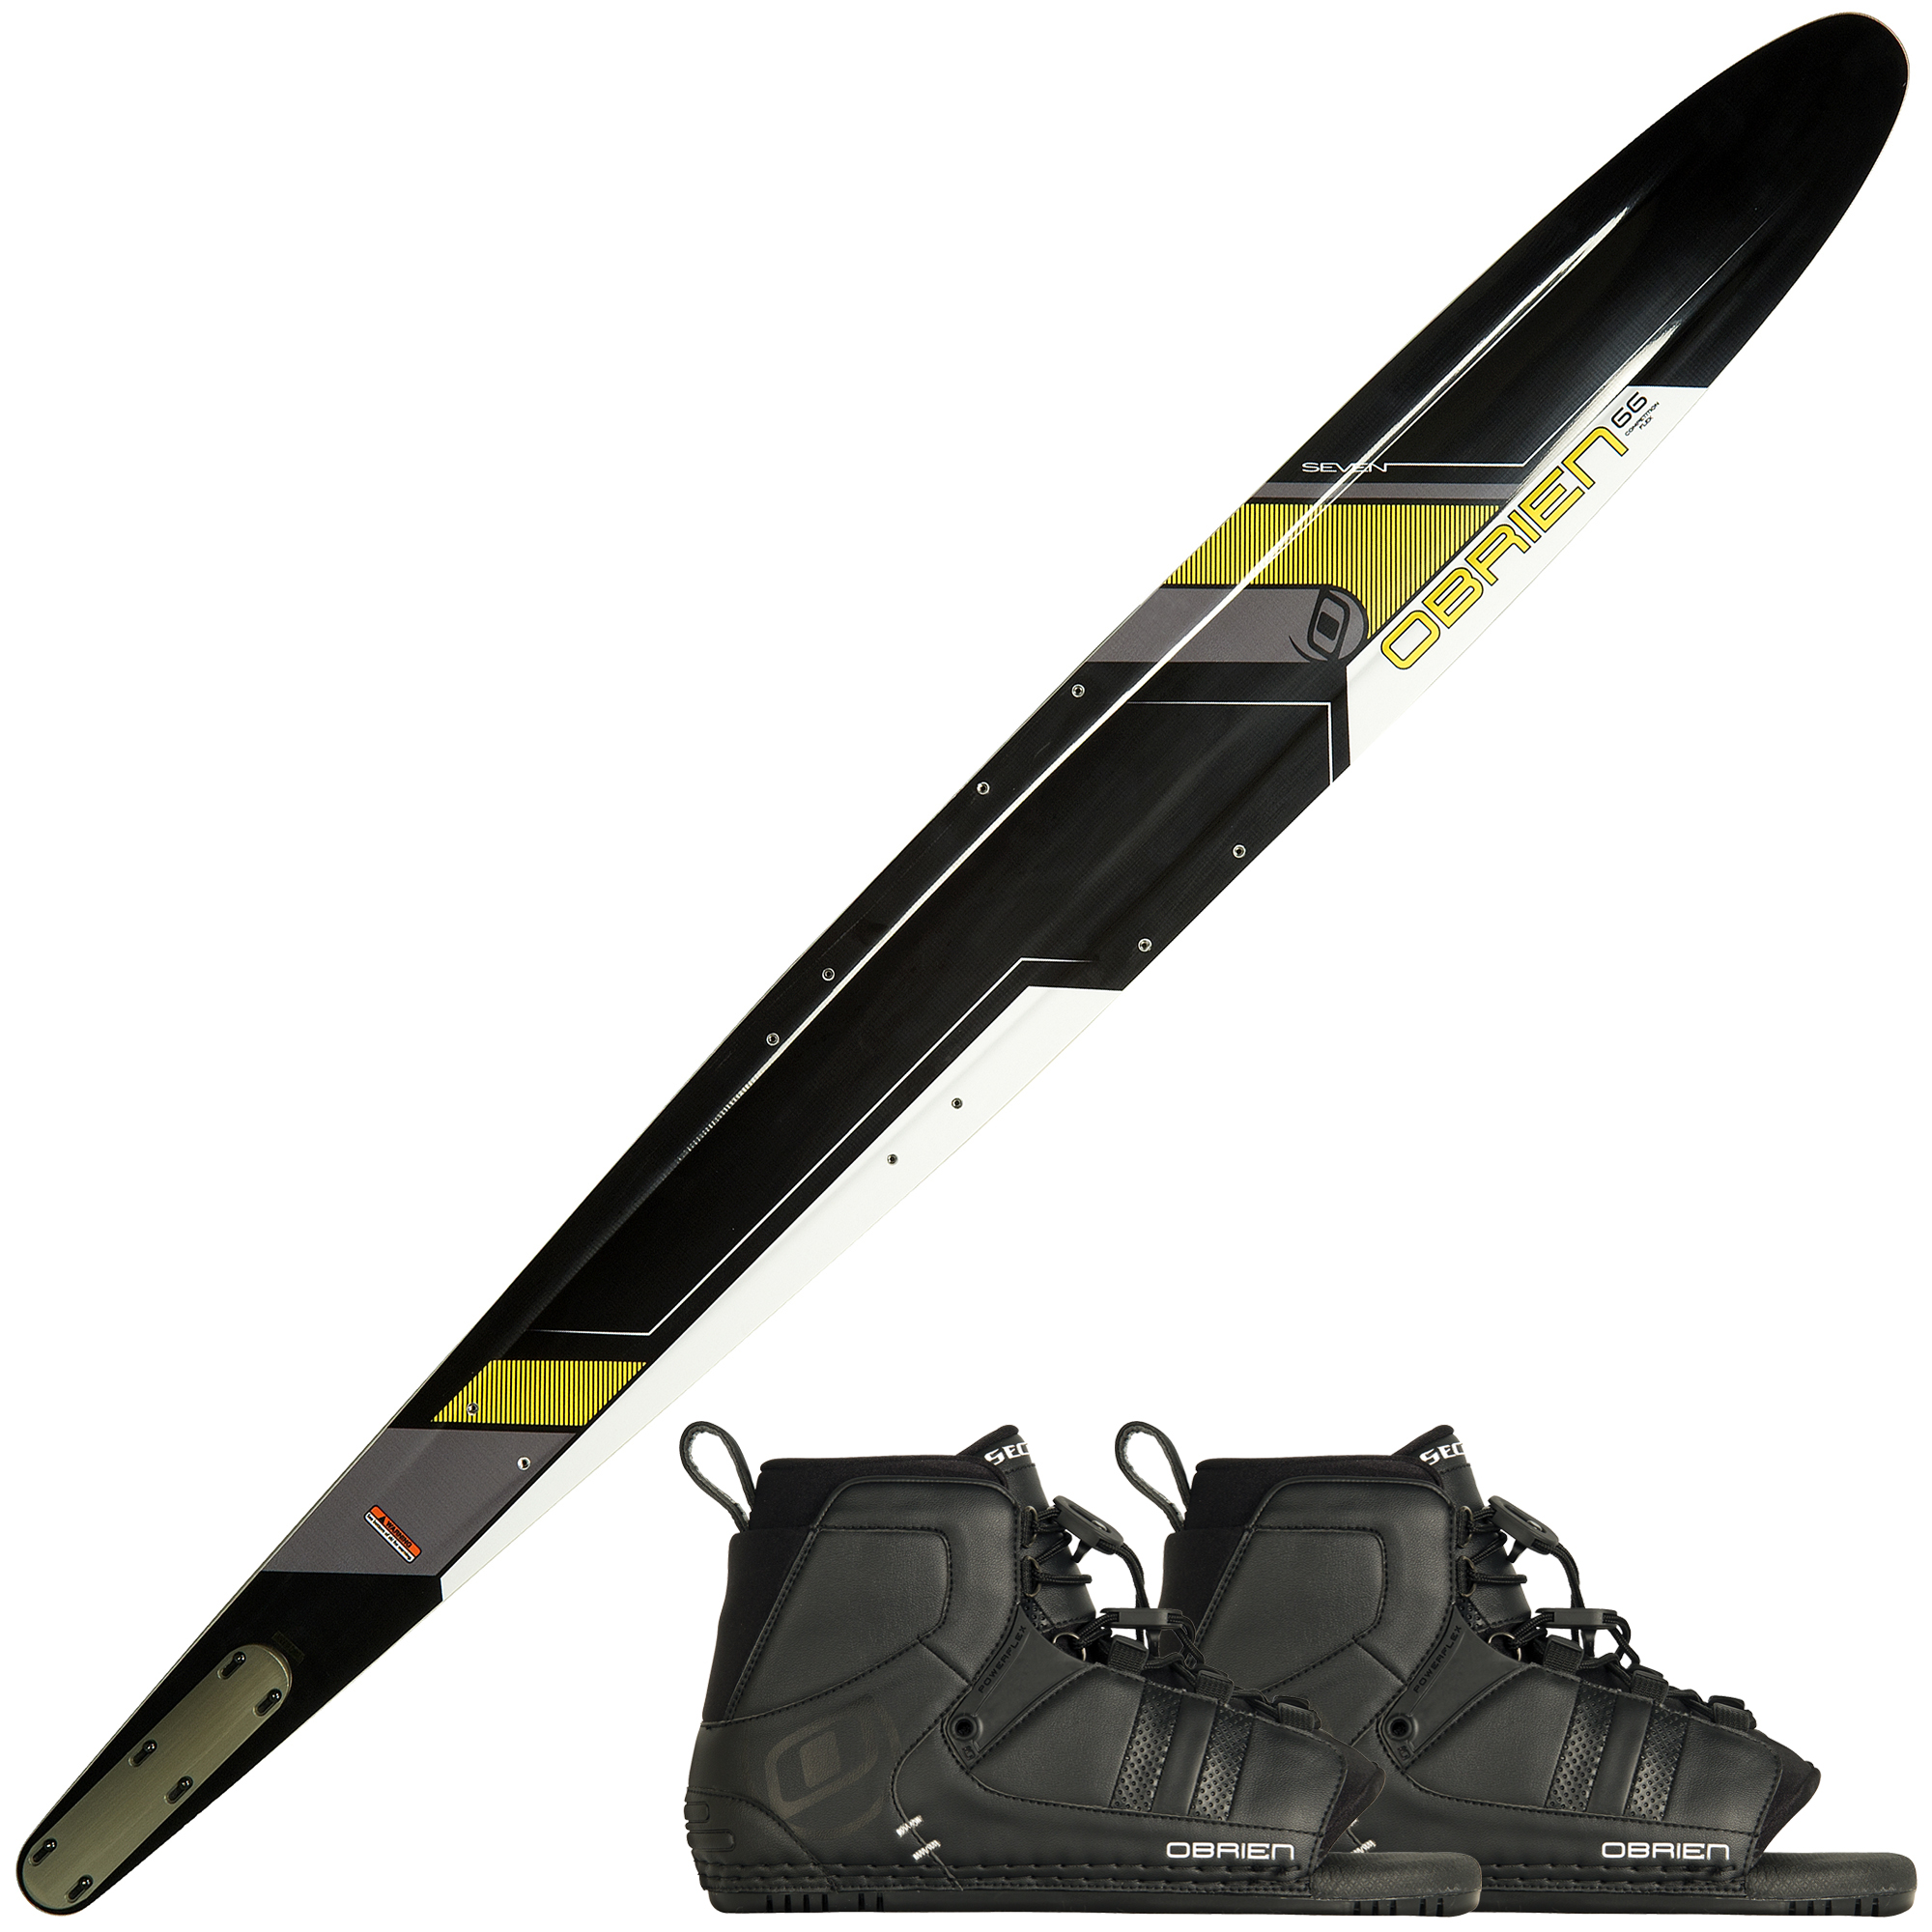 O'Brien Seven Slalom Waterski With Double Sector Bindings